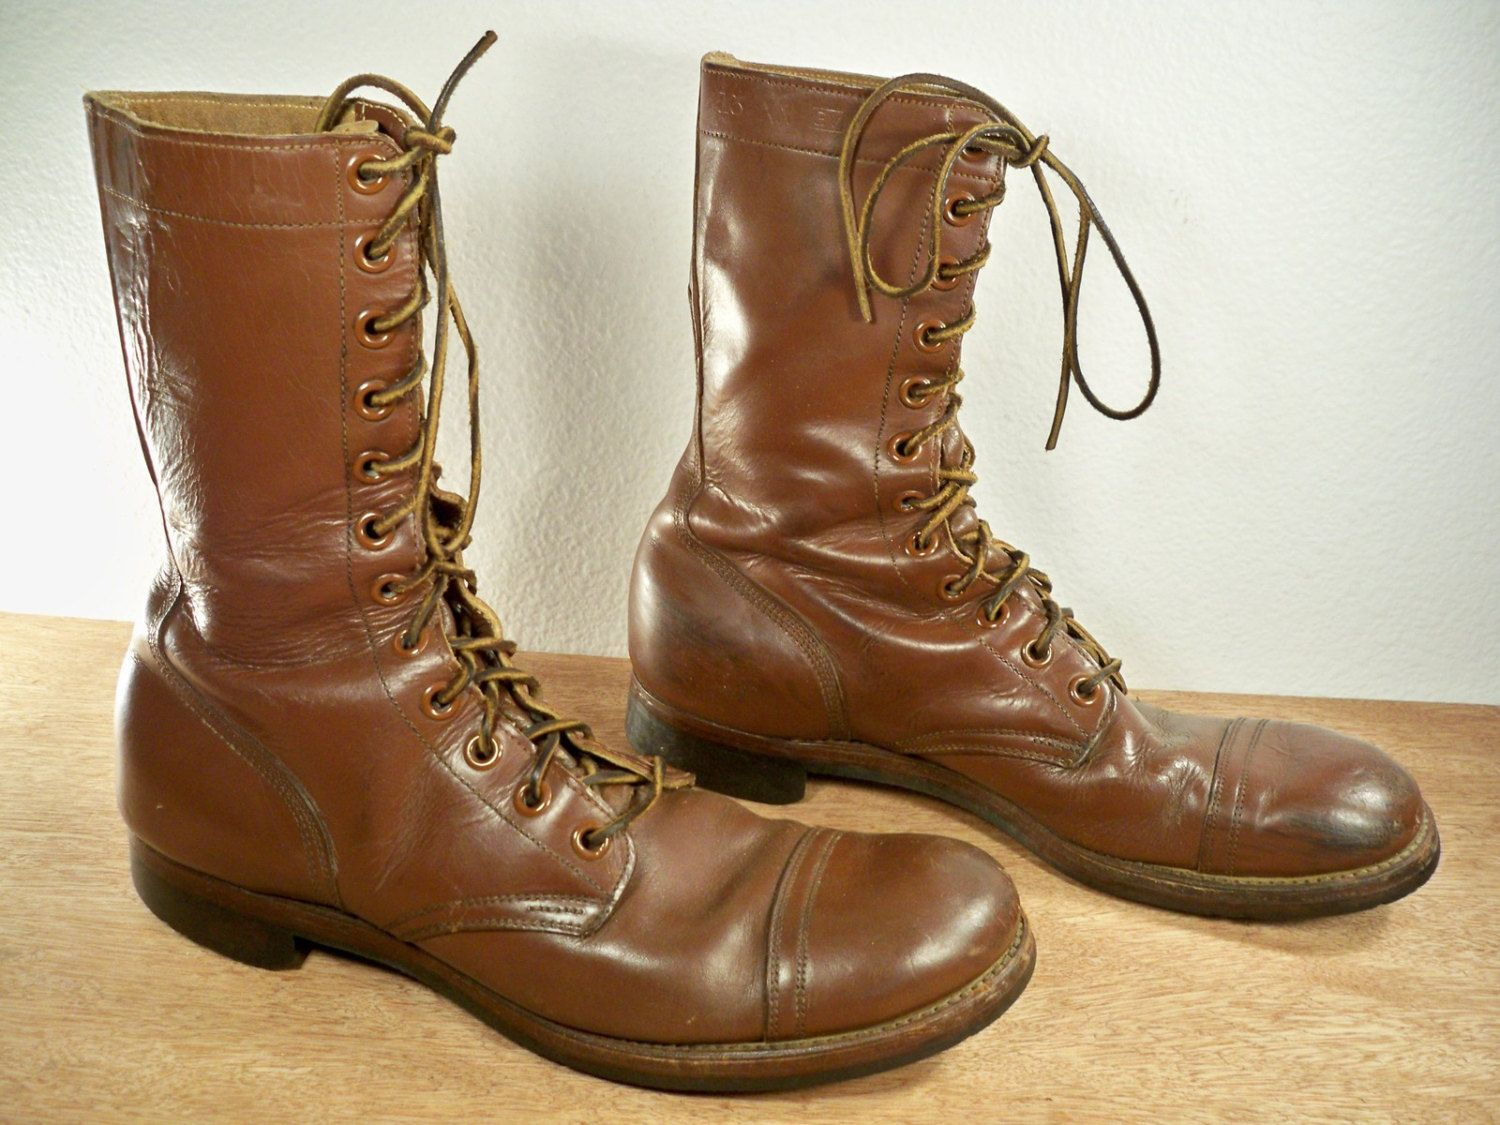 Vintage Us Army Issue Korean War Era Russet Combat Brown Leather Men S Cap Toe Boots With Light Tread Soles Made In Mens Cap Toe Boots Cap Toe Boots Old Boots